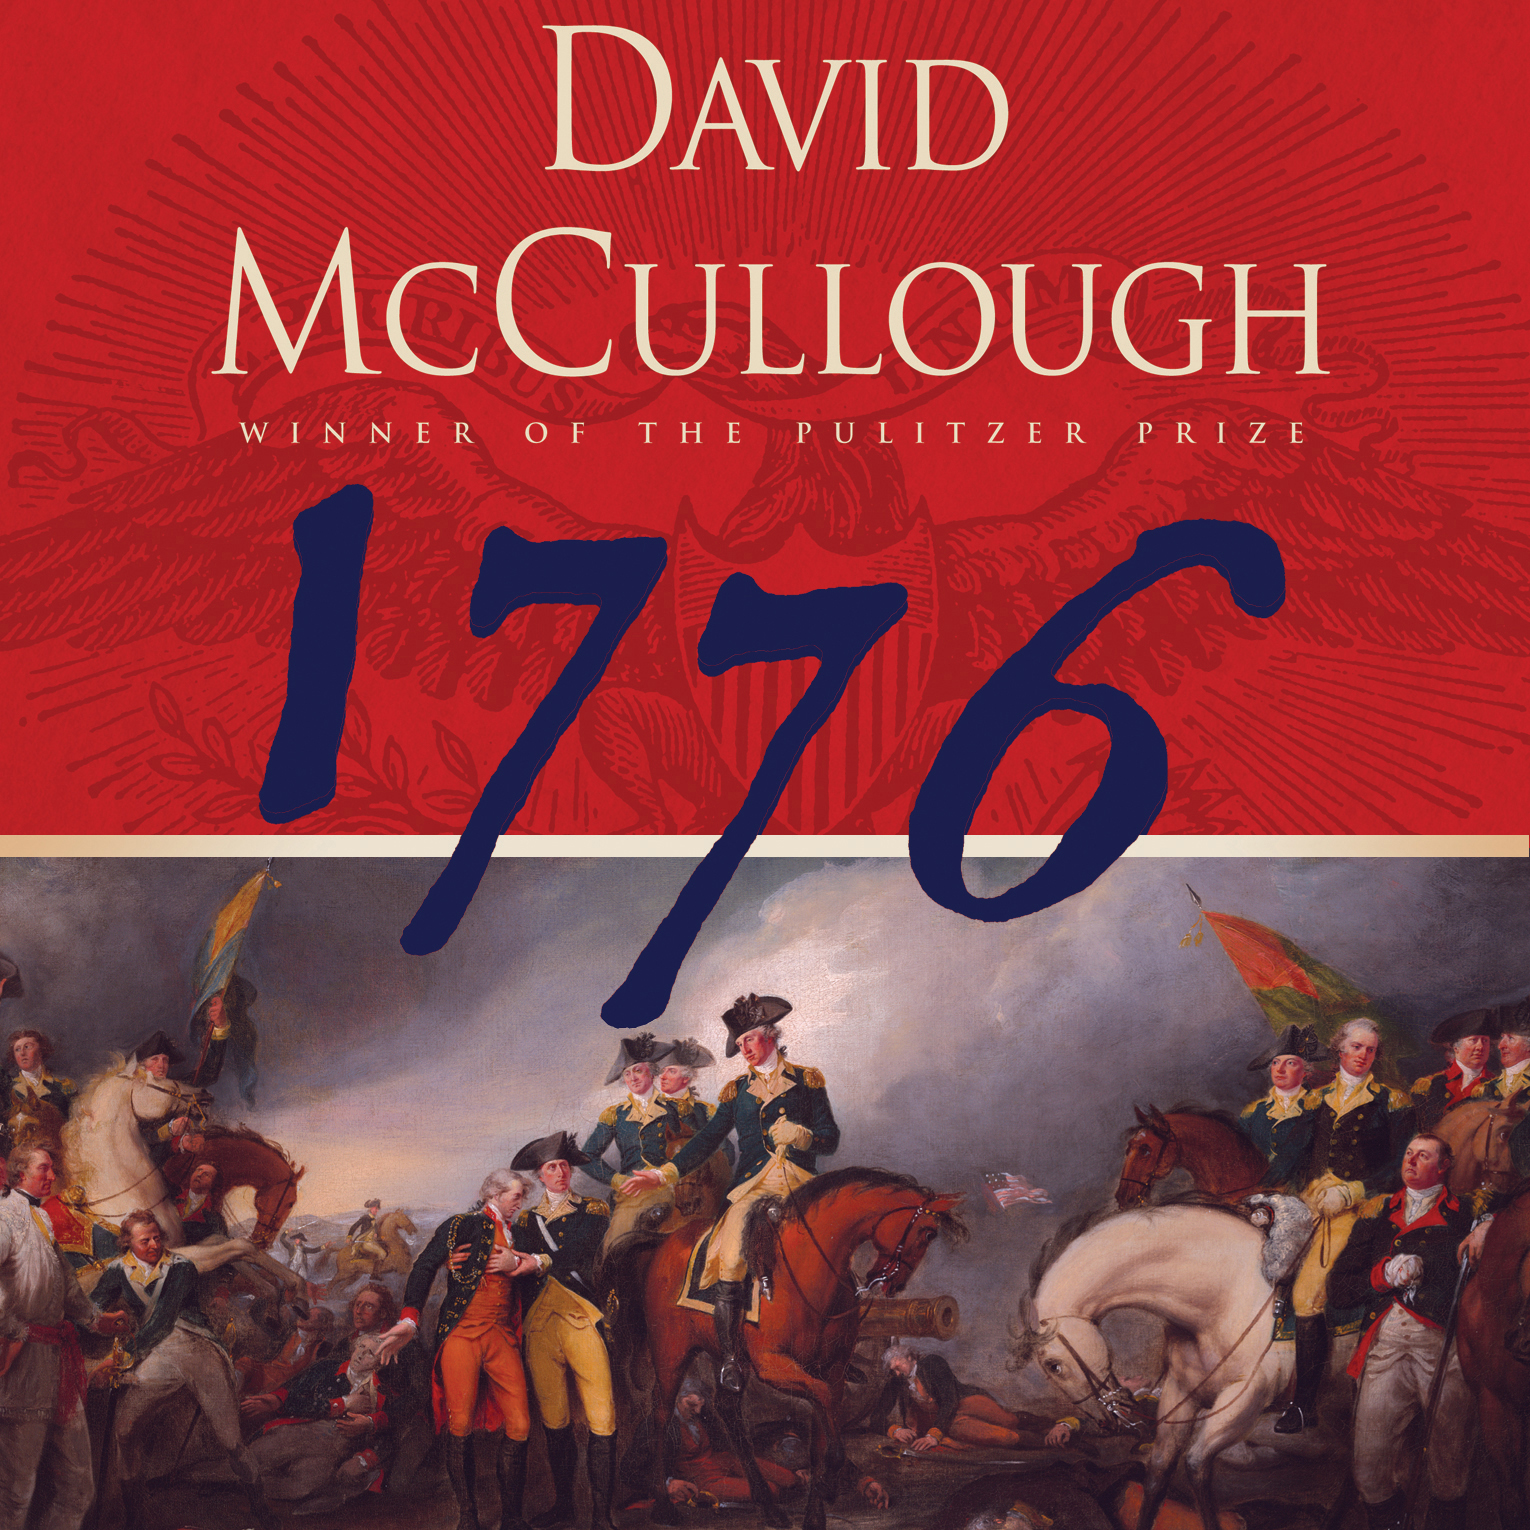 1776 by david mccullough 1776 by david mccullough simon & schuster used - good a sound copy with only light wear overall a solid copy at a great price all orders guaranteed and ship.